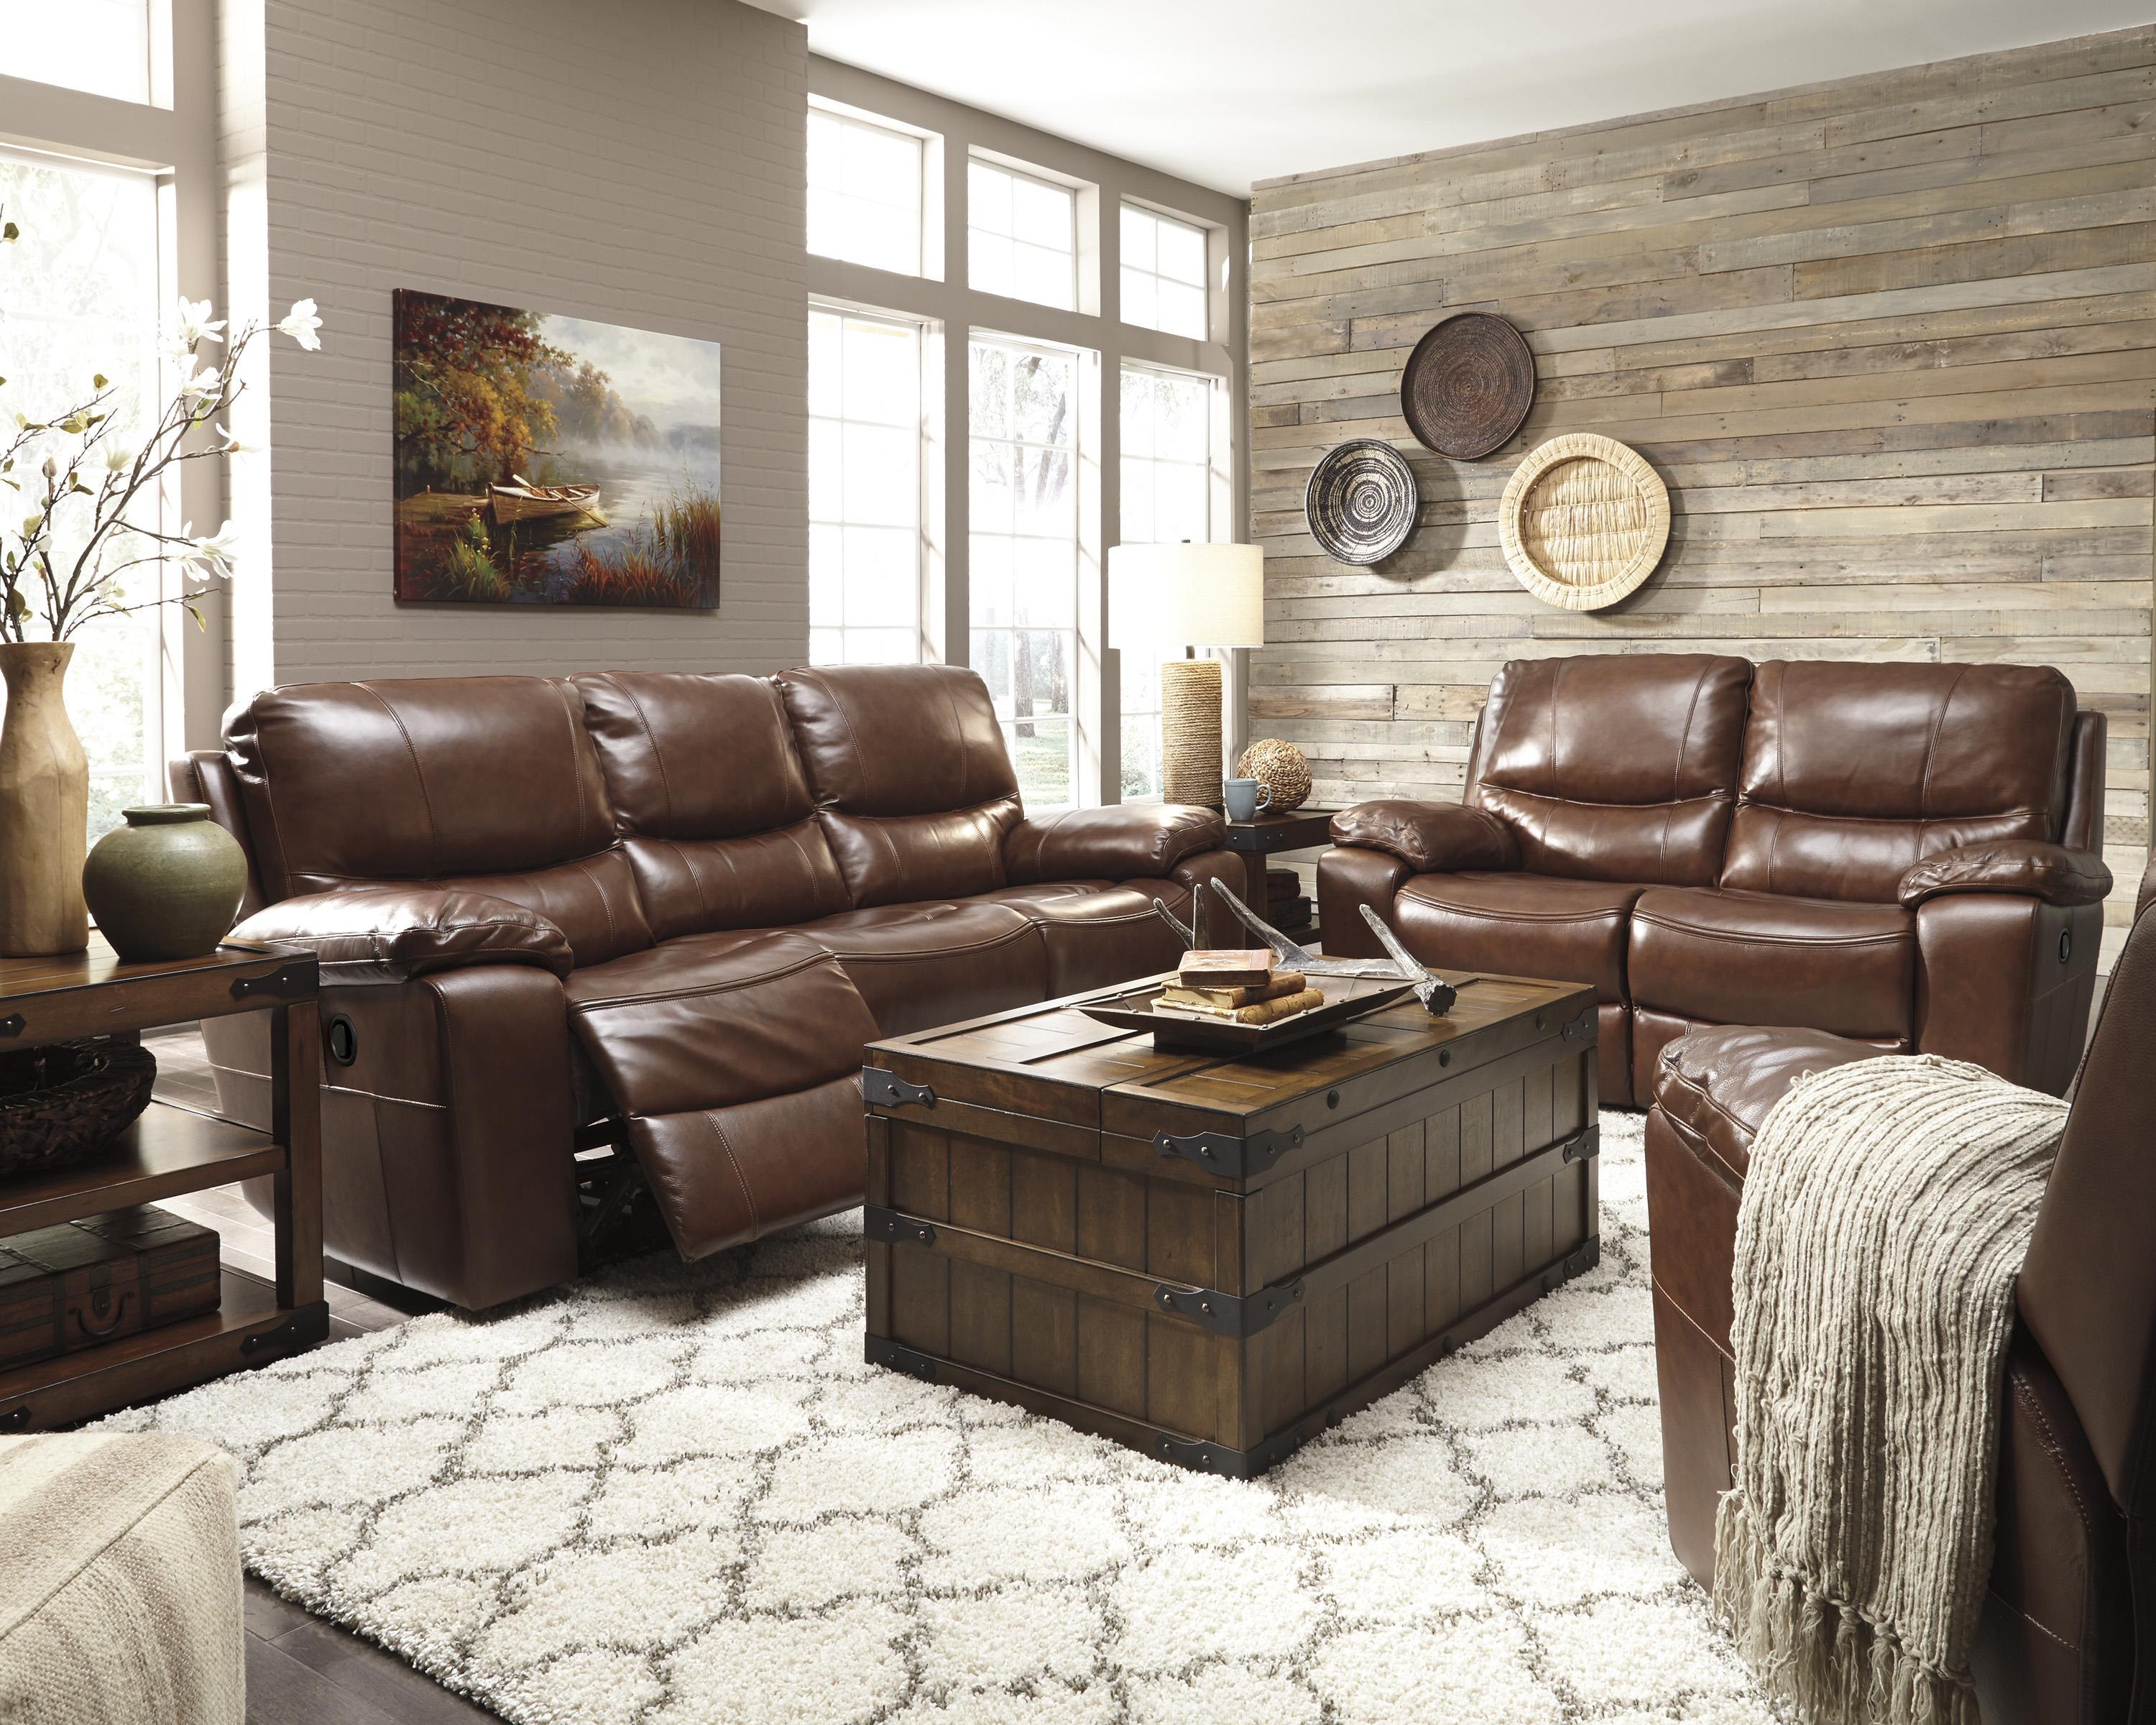 Signature Design by Ashley Panache Reclining Living Room Group - Item Number: U72900 Living Room Group 3